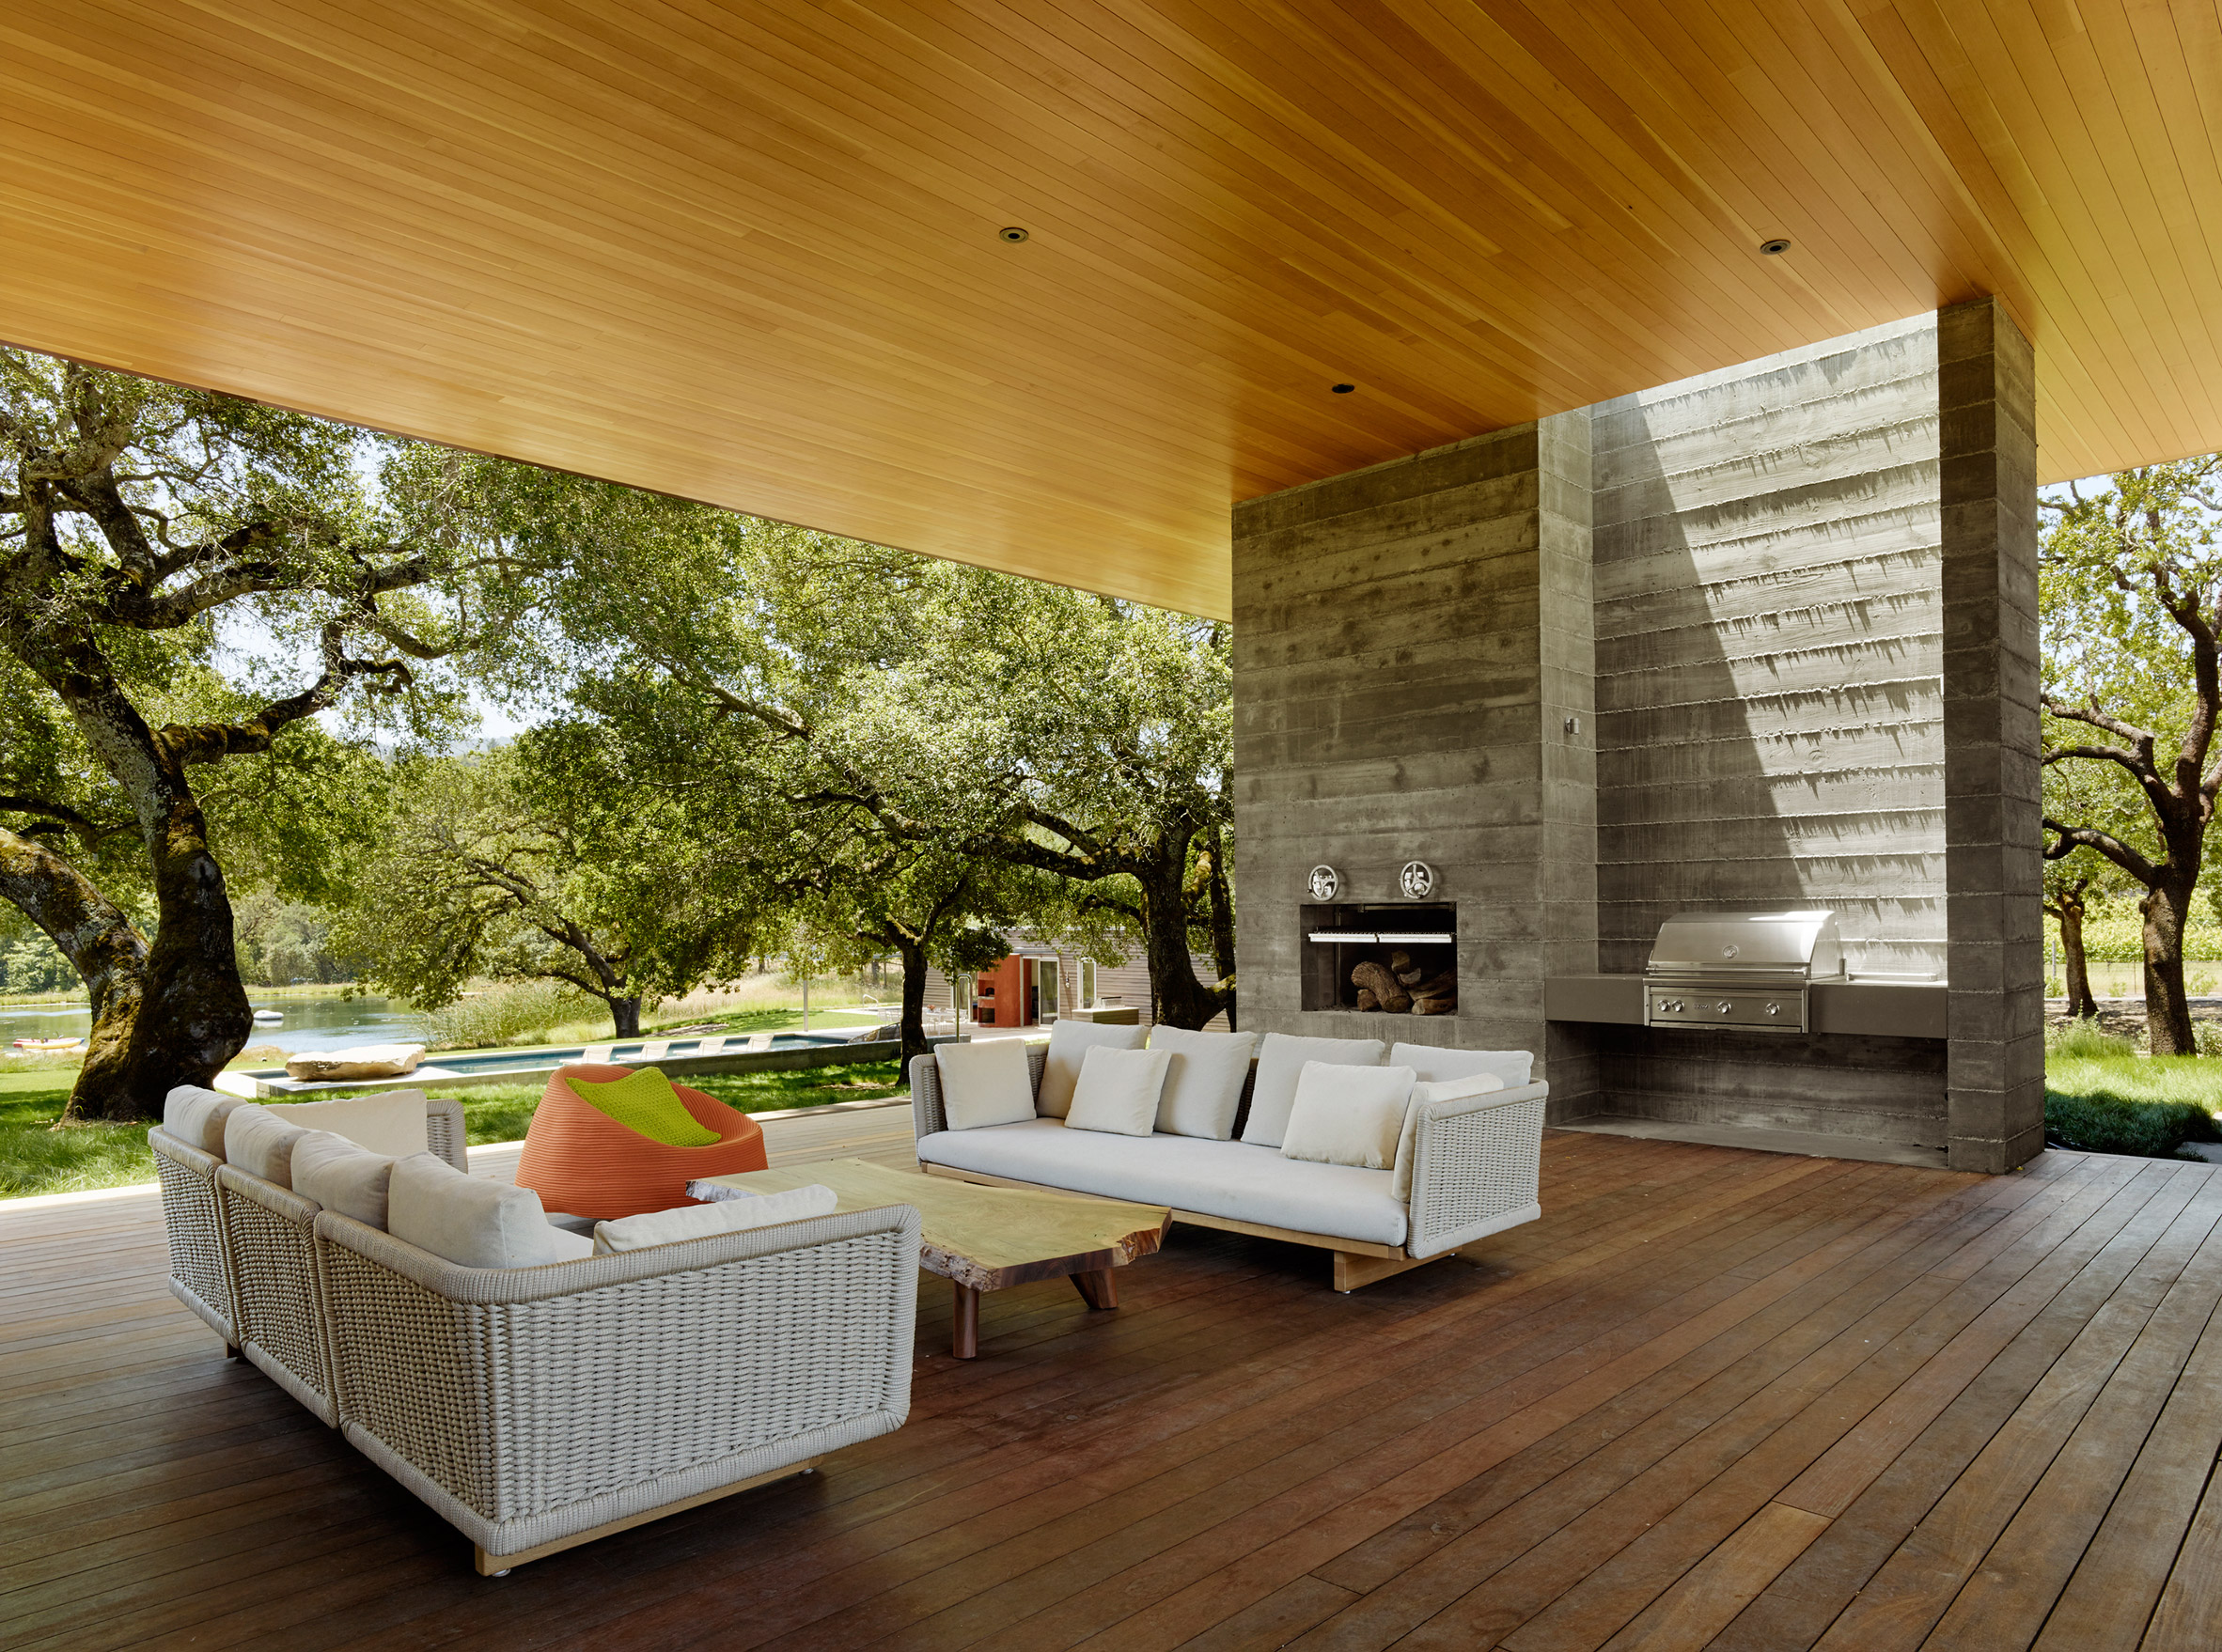 California country home by Turnbull Griffin Haesloop features an outdoor living room